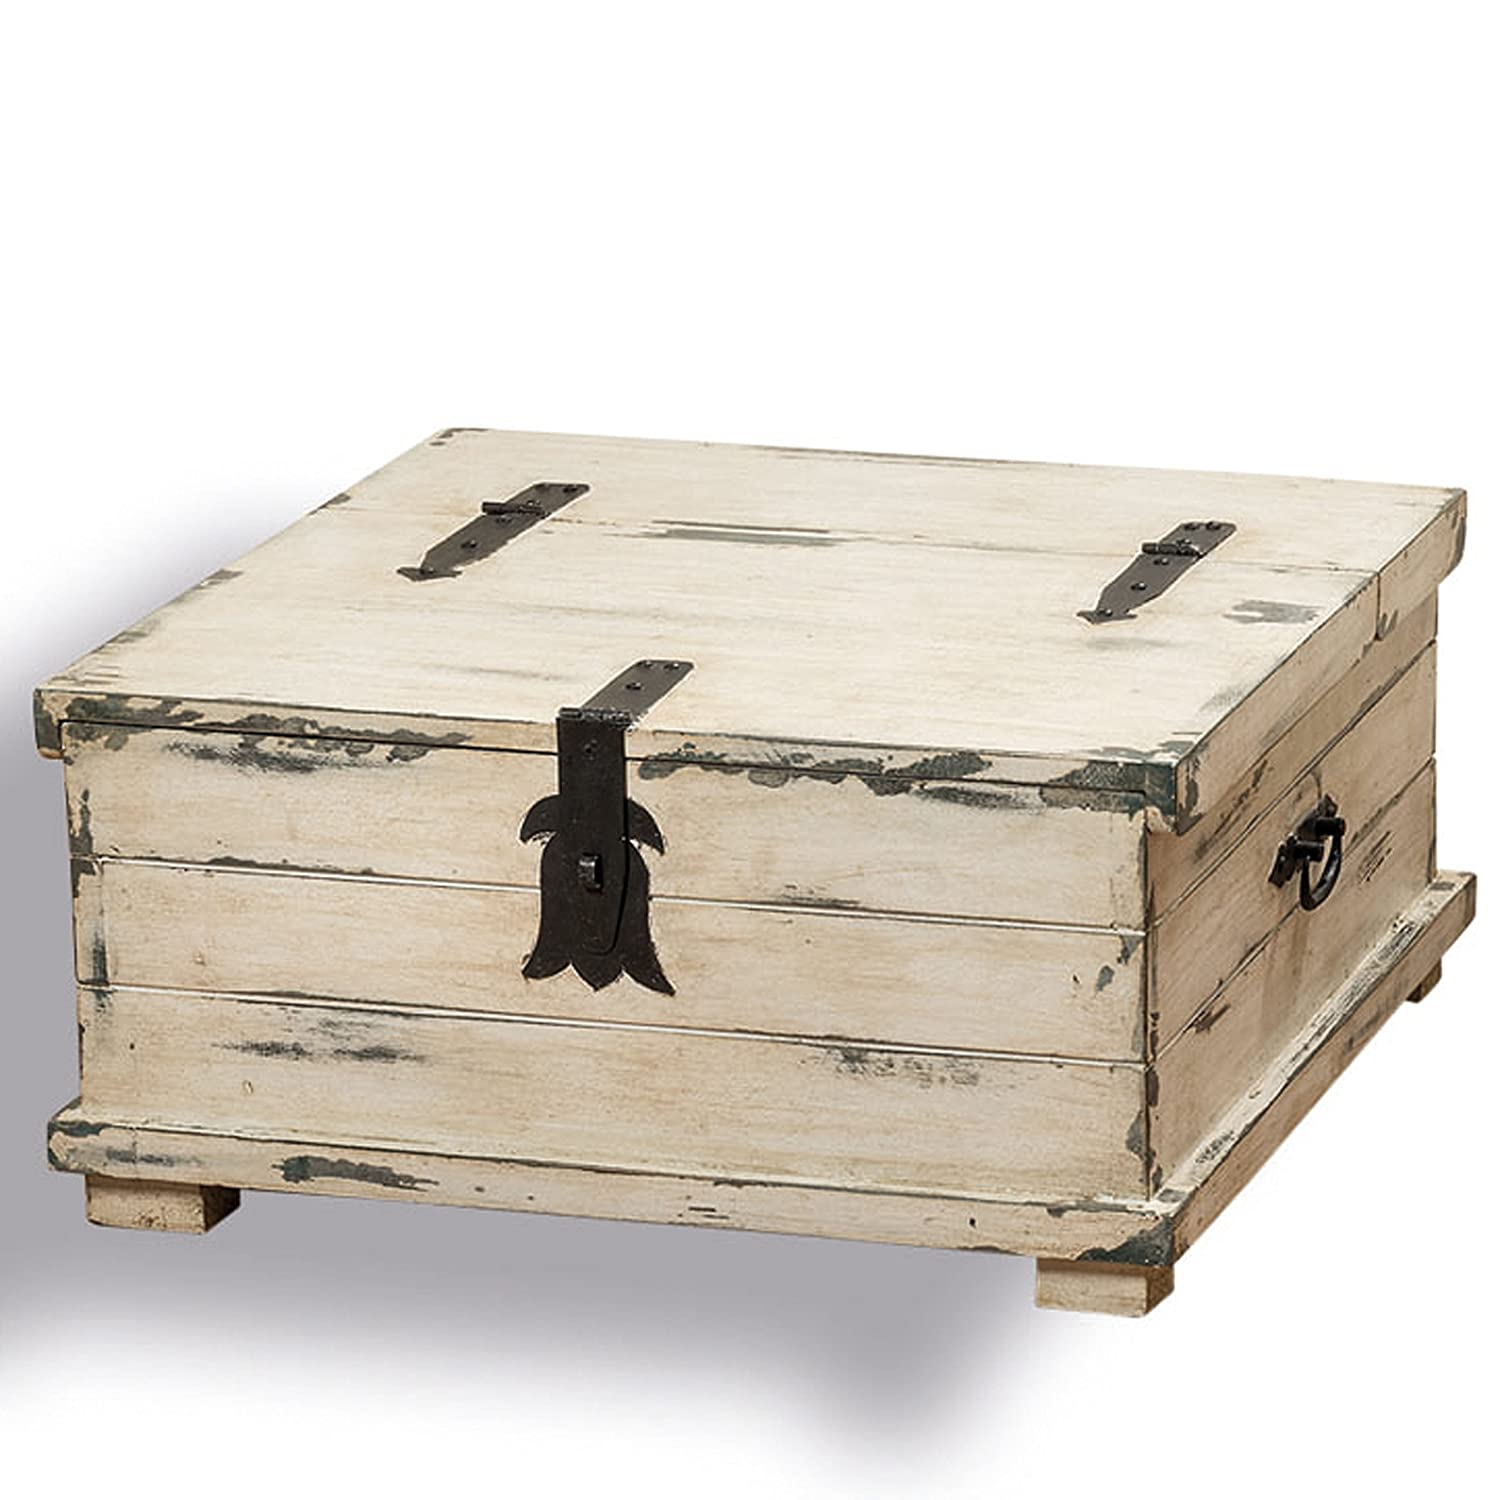 Amazon the cape cod steamer trunk coffee table and storage amazon the cape cod steamer trunk coffee table and storage box approx 2ft square rustic creamy white pale blue vintage gray distressed finish geotapseo Image collections